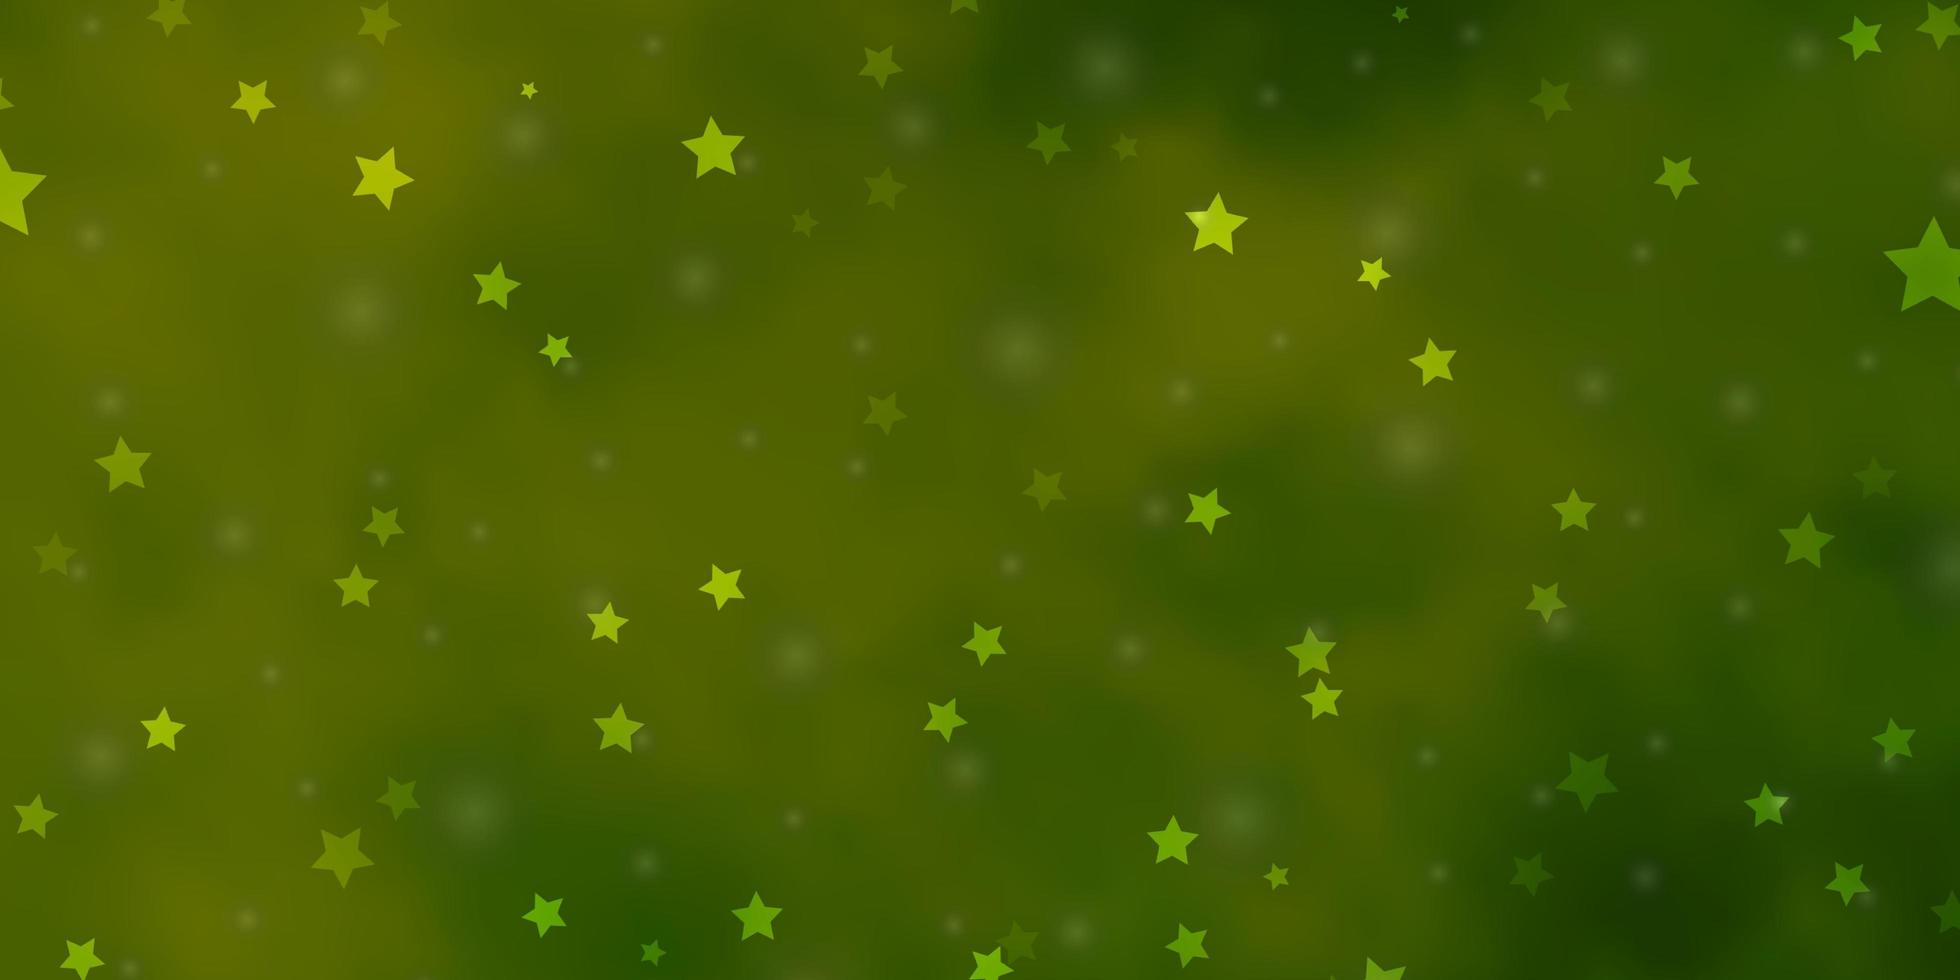 Light Green background with small and big stars. vector